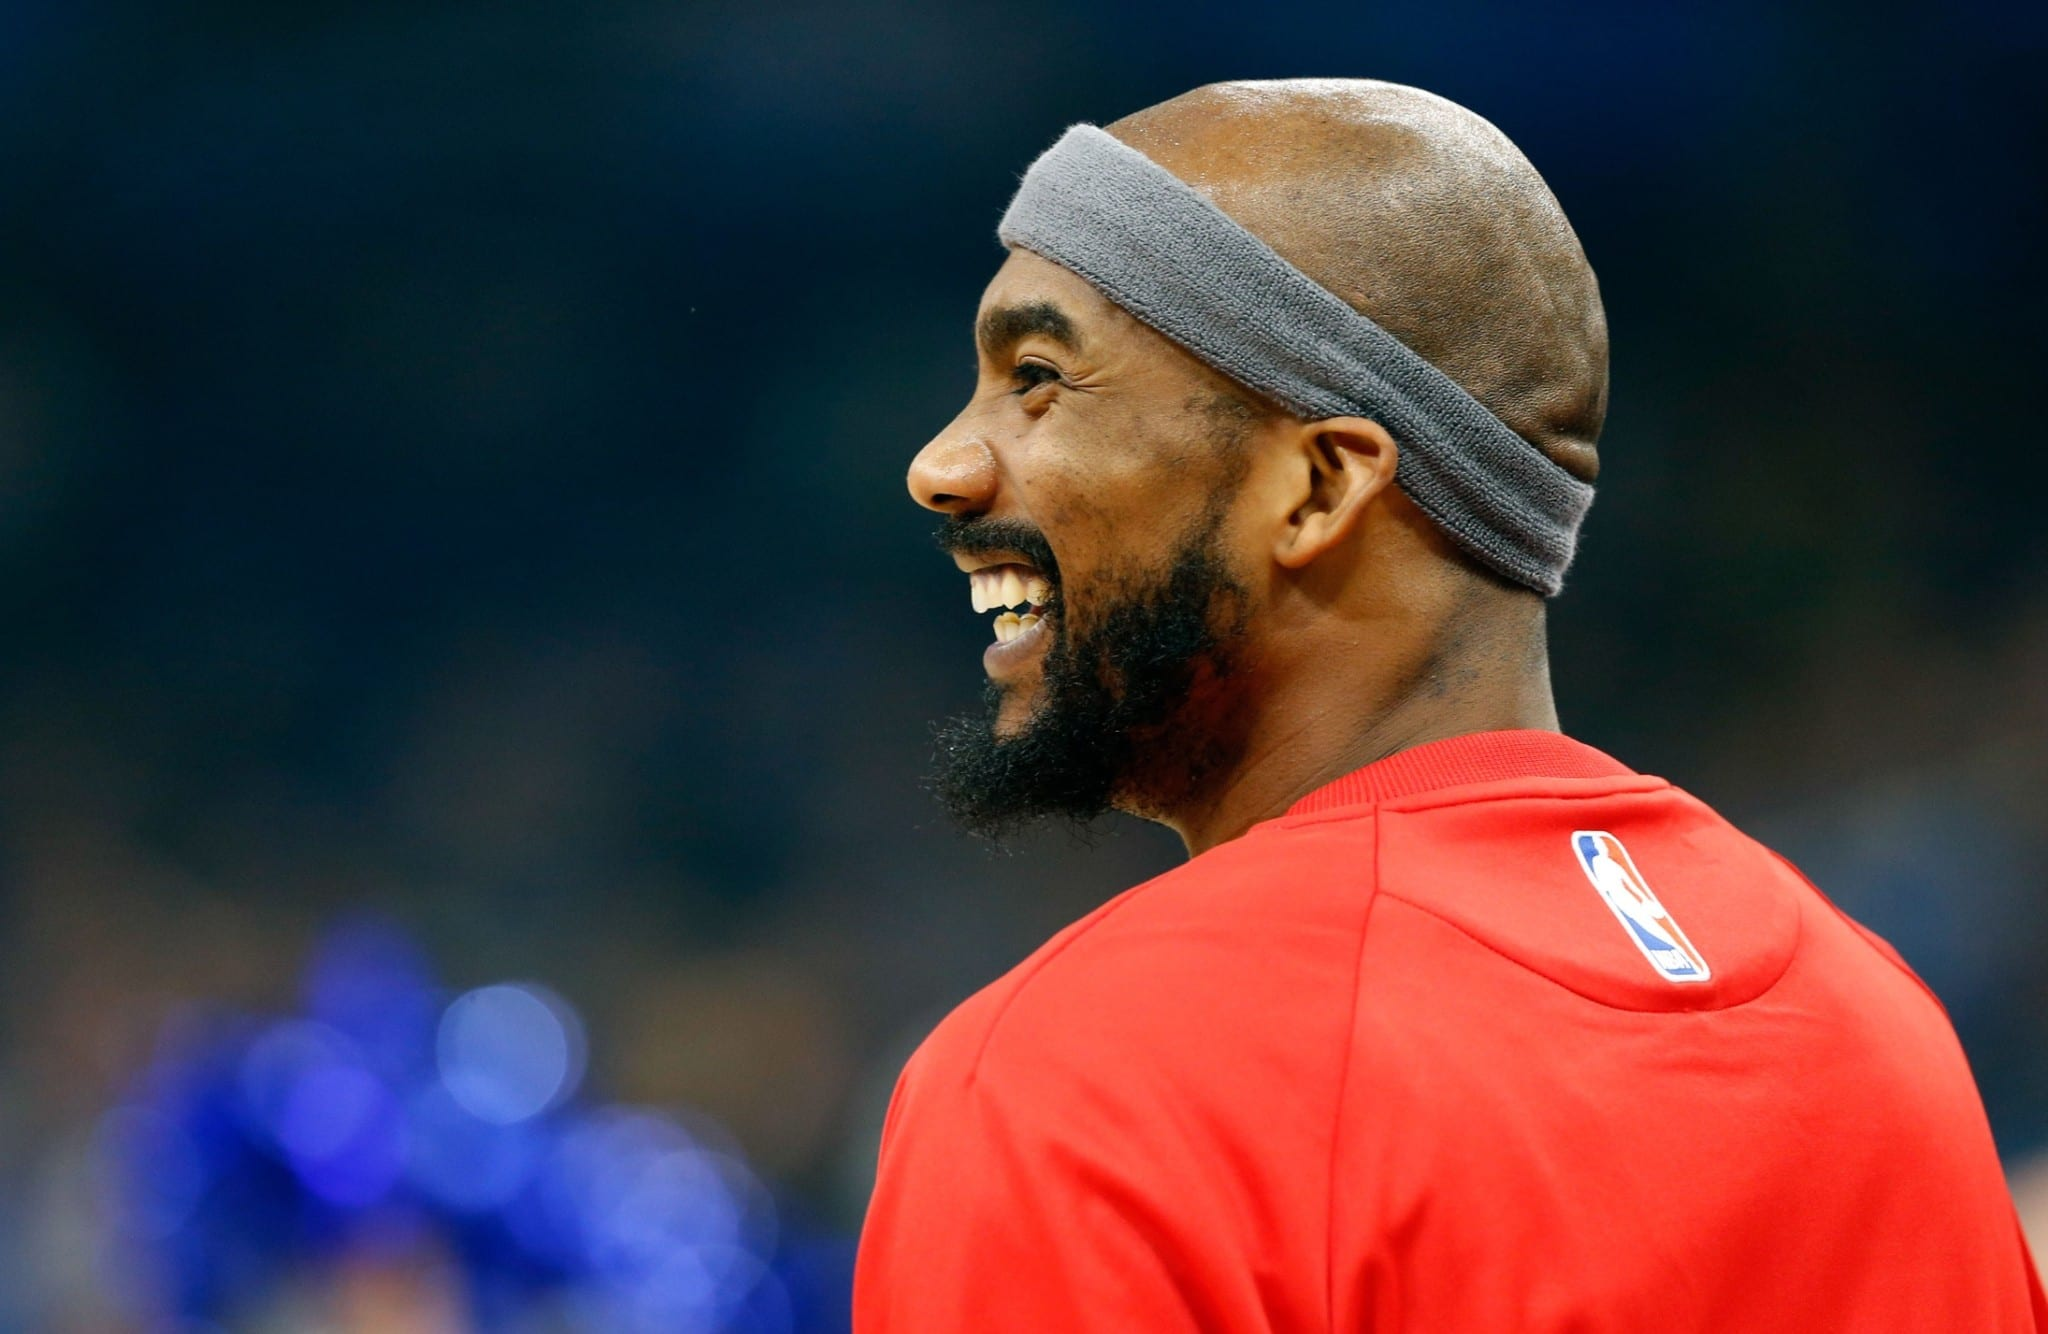 Corey Brewer Speaks About What He Brings To The Lakers